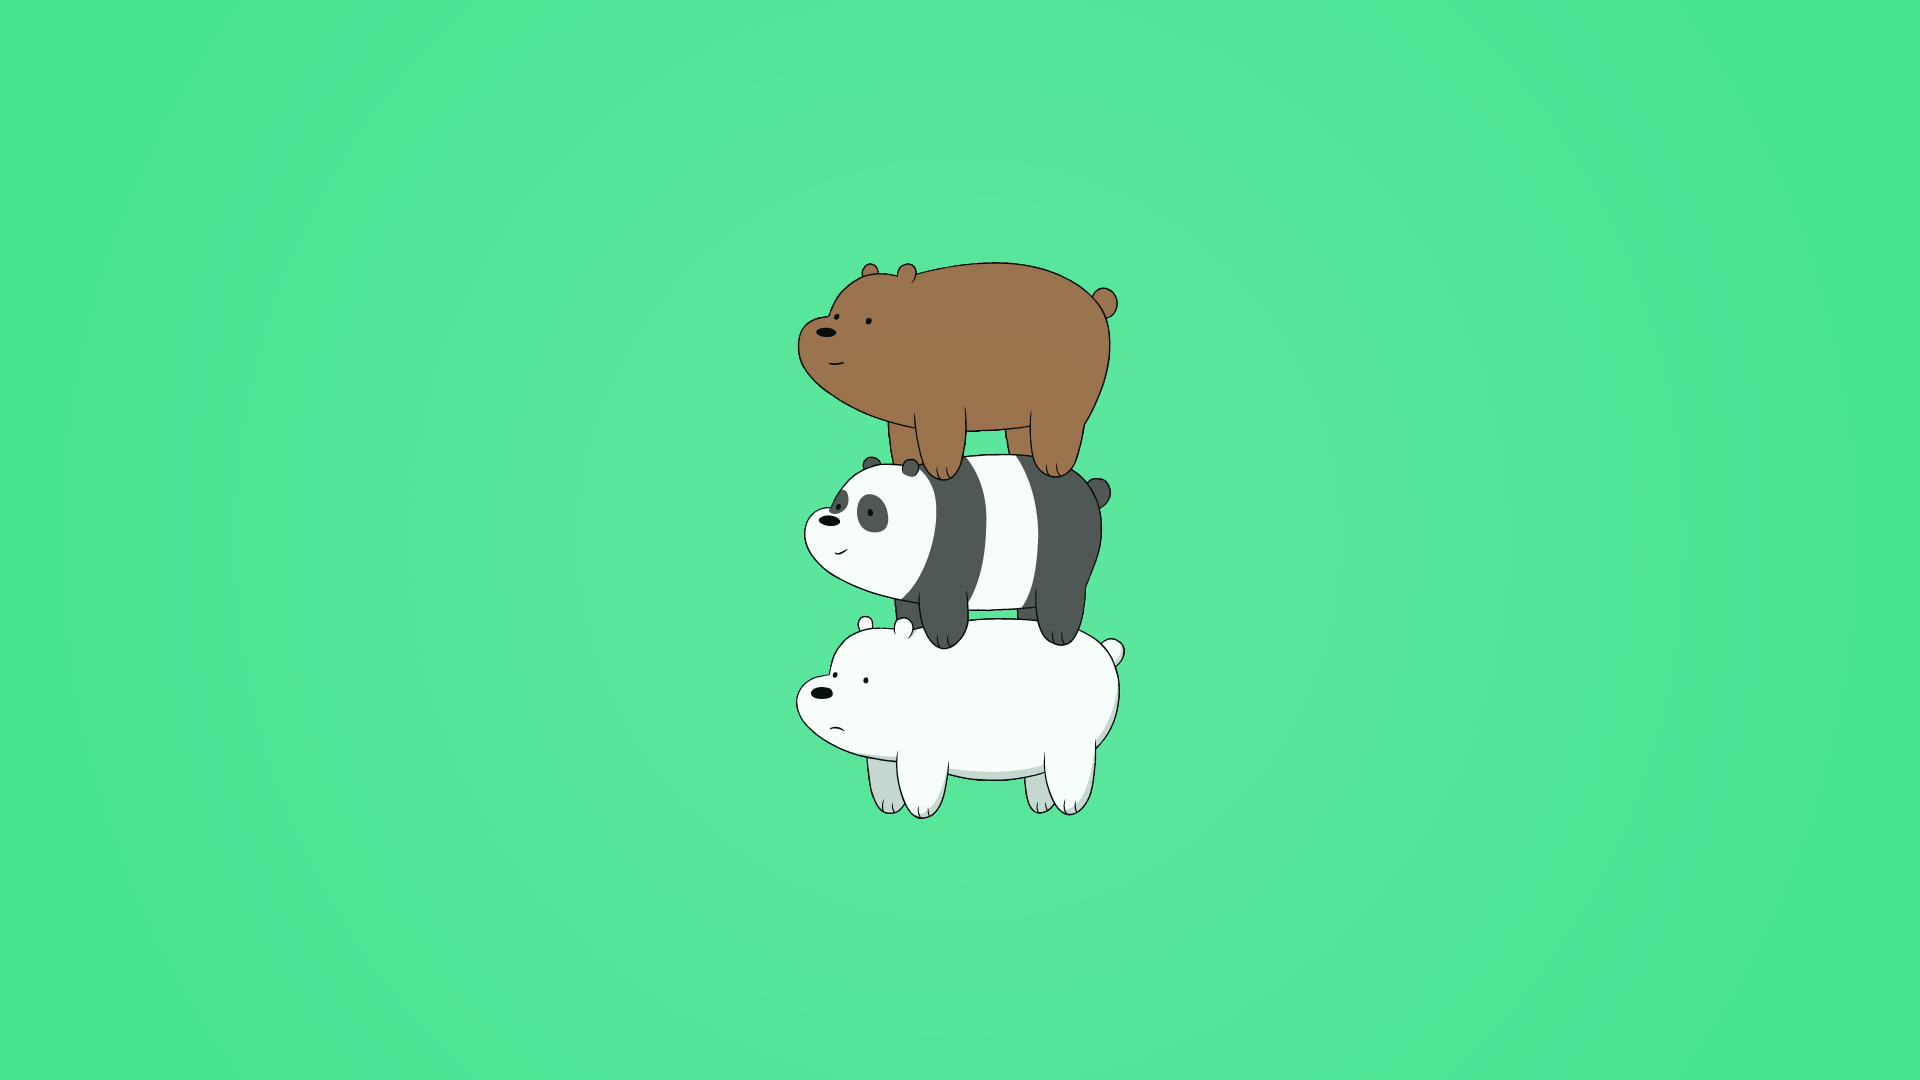 We Bare Bears Wallpapers FREE On GreePX